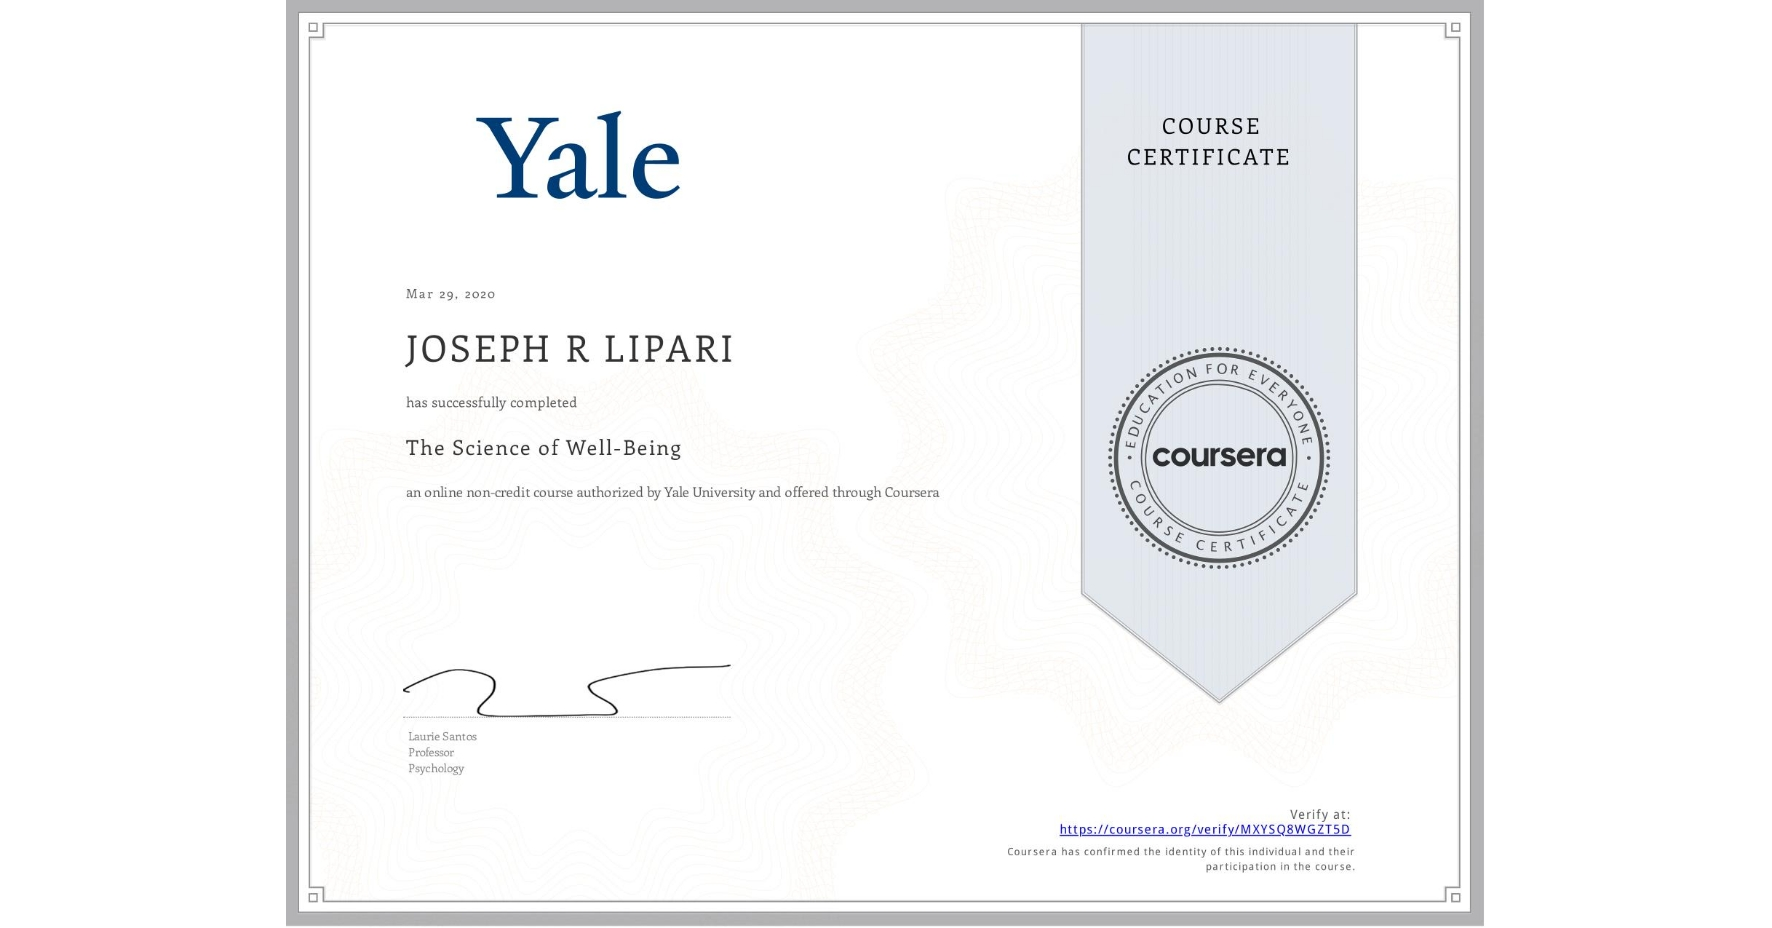 View certificate for JOSEPH R  LIPARI, The Science of Well-Being, an online non-credit course authorized by Yale University and offered through Coursera